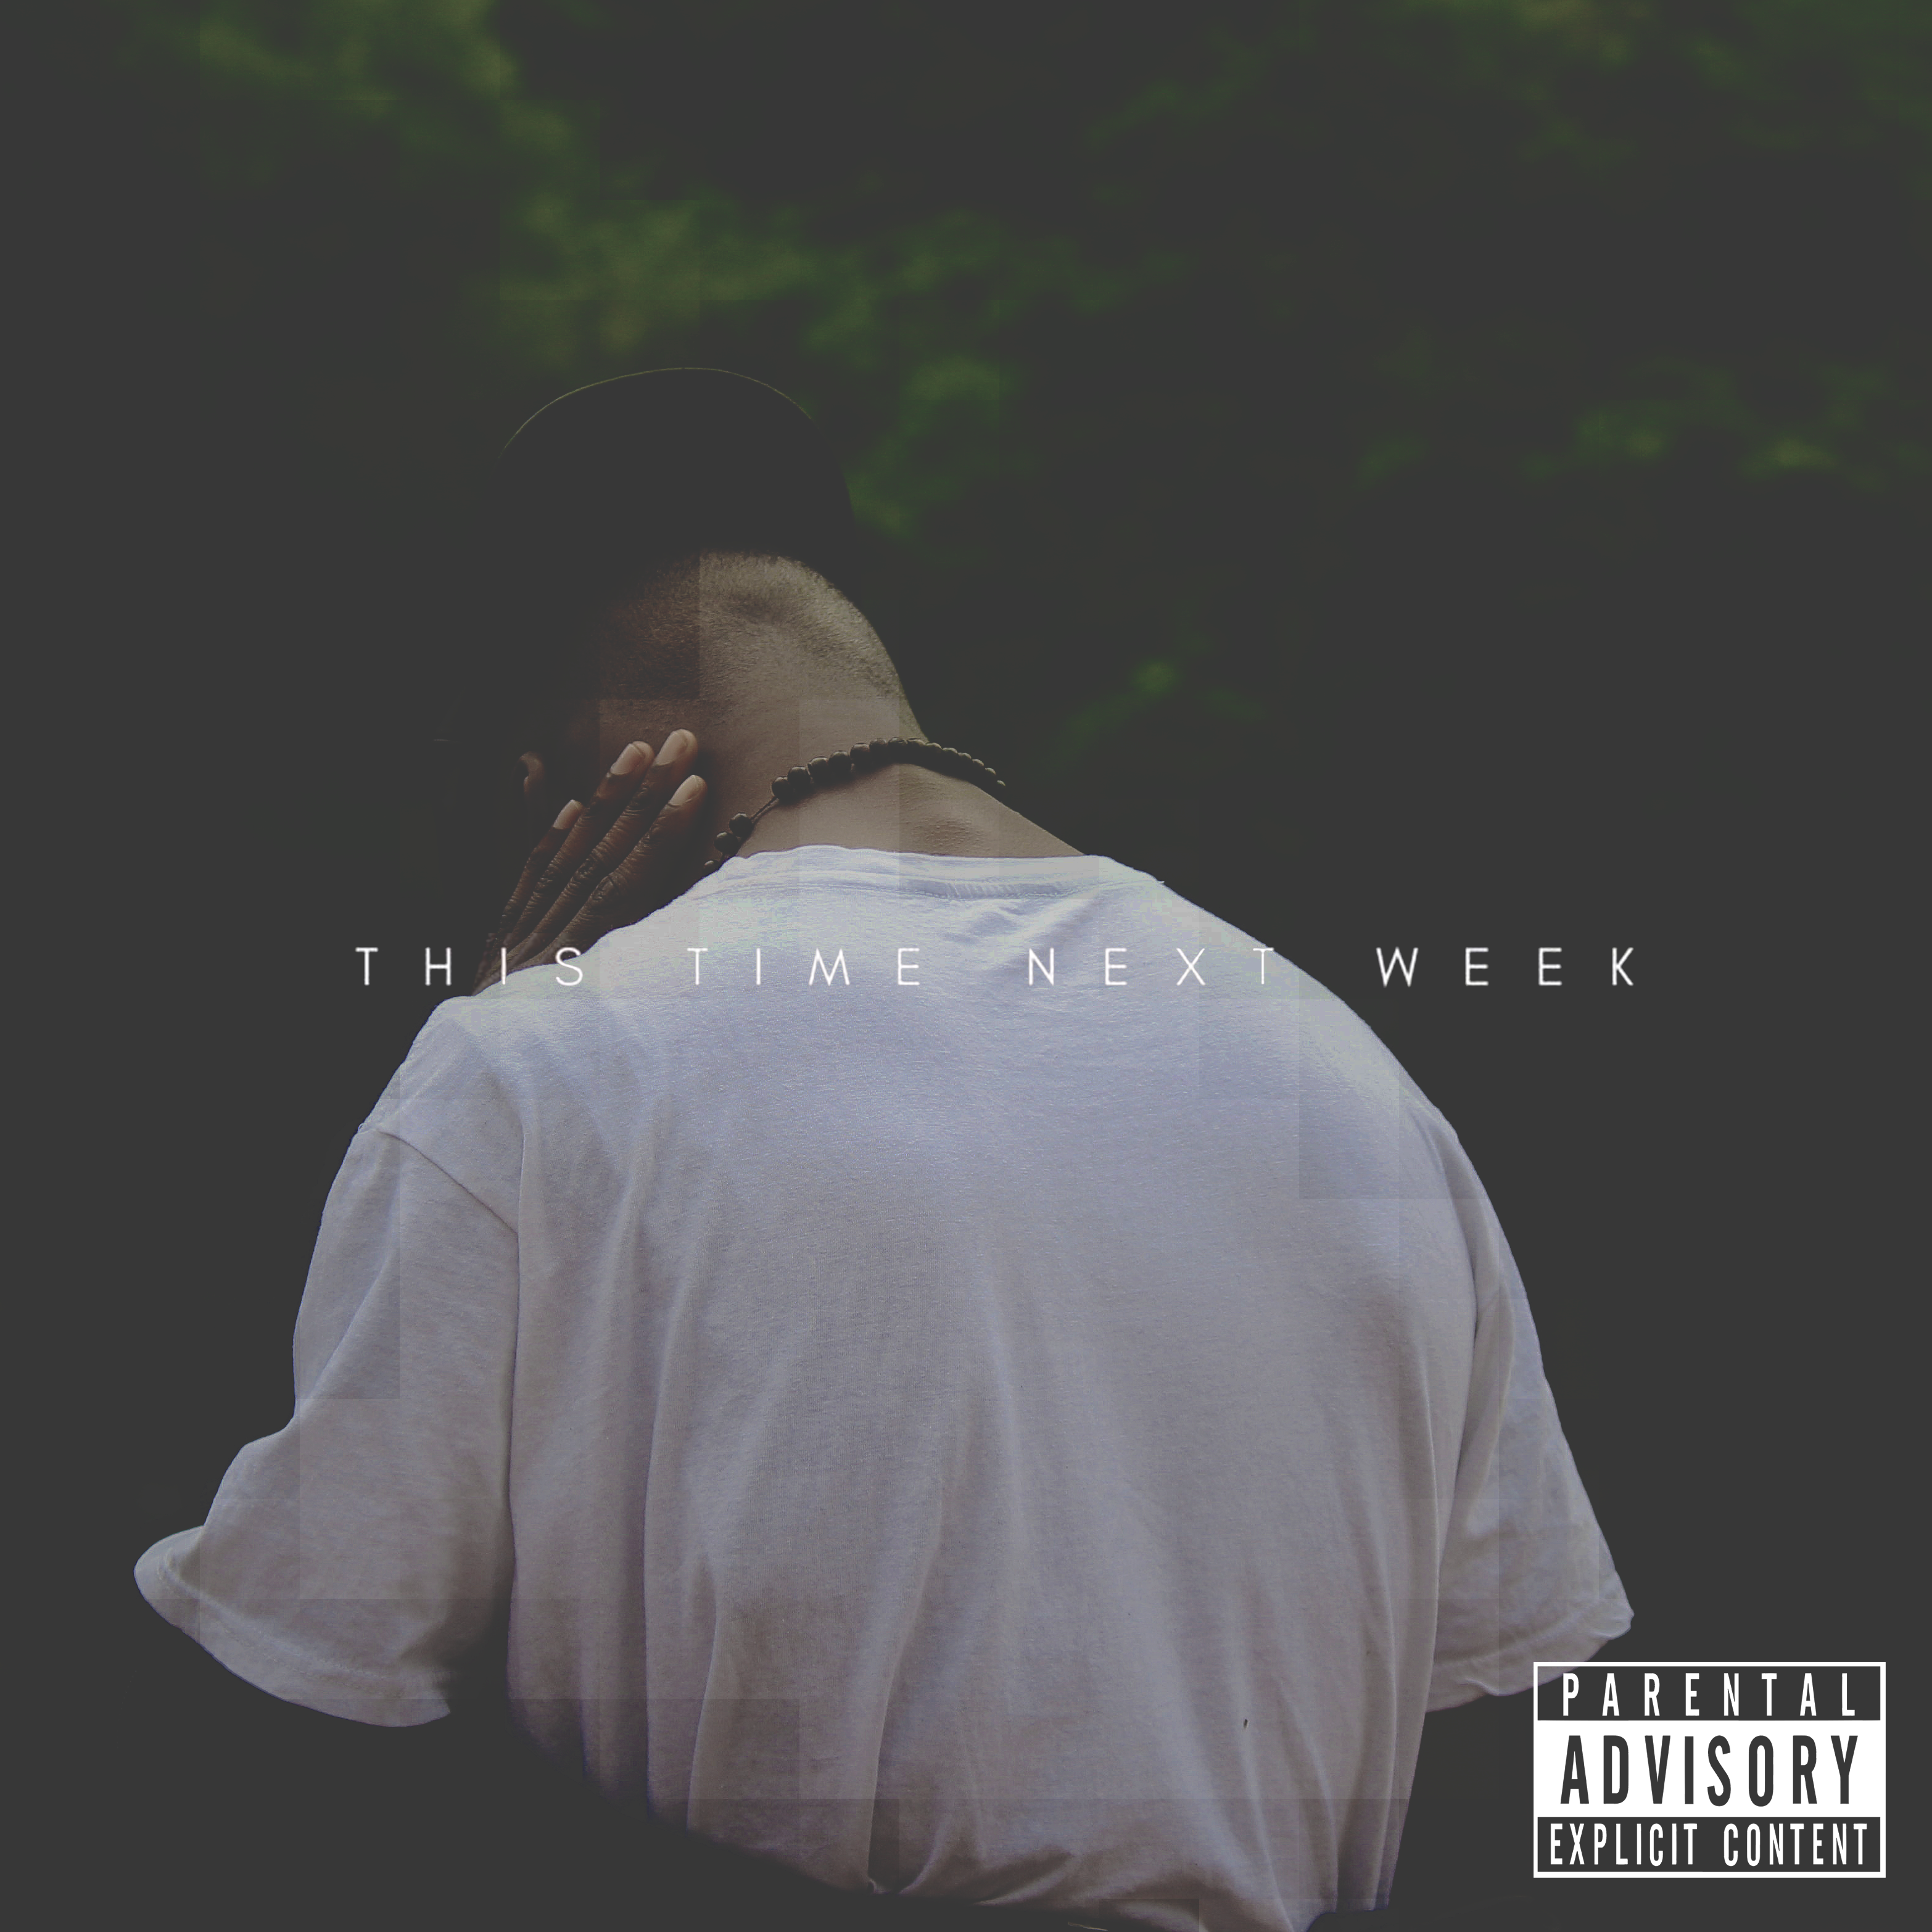 Vitu Drops 'This Time Next Week' Project [Listen/Download] This Time Next Week Revised v4 1